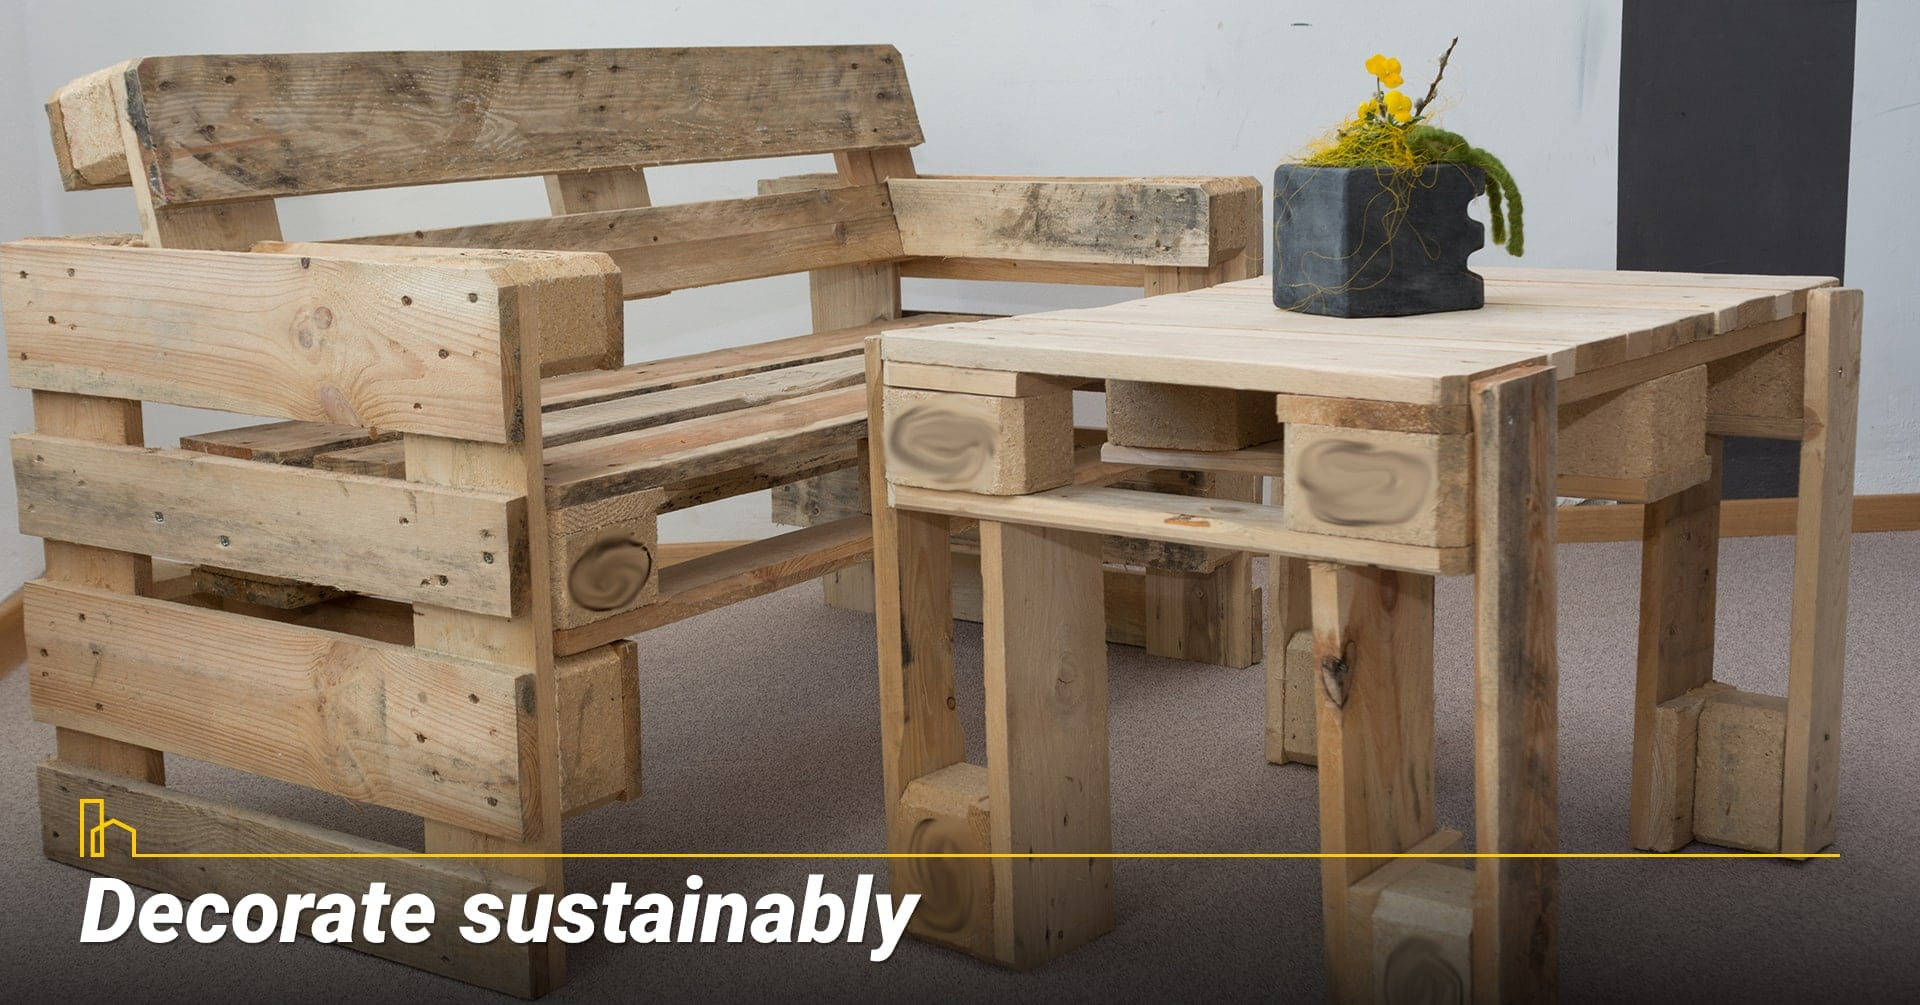 Decorate sustainably, design with environment in mind